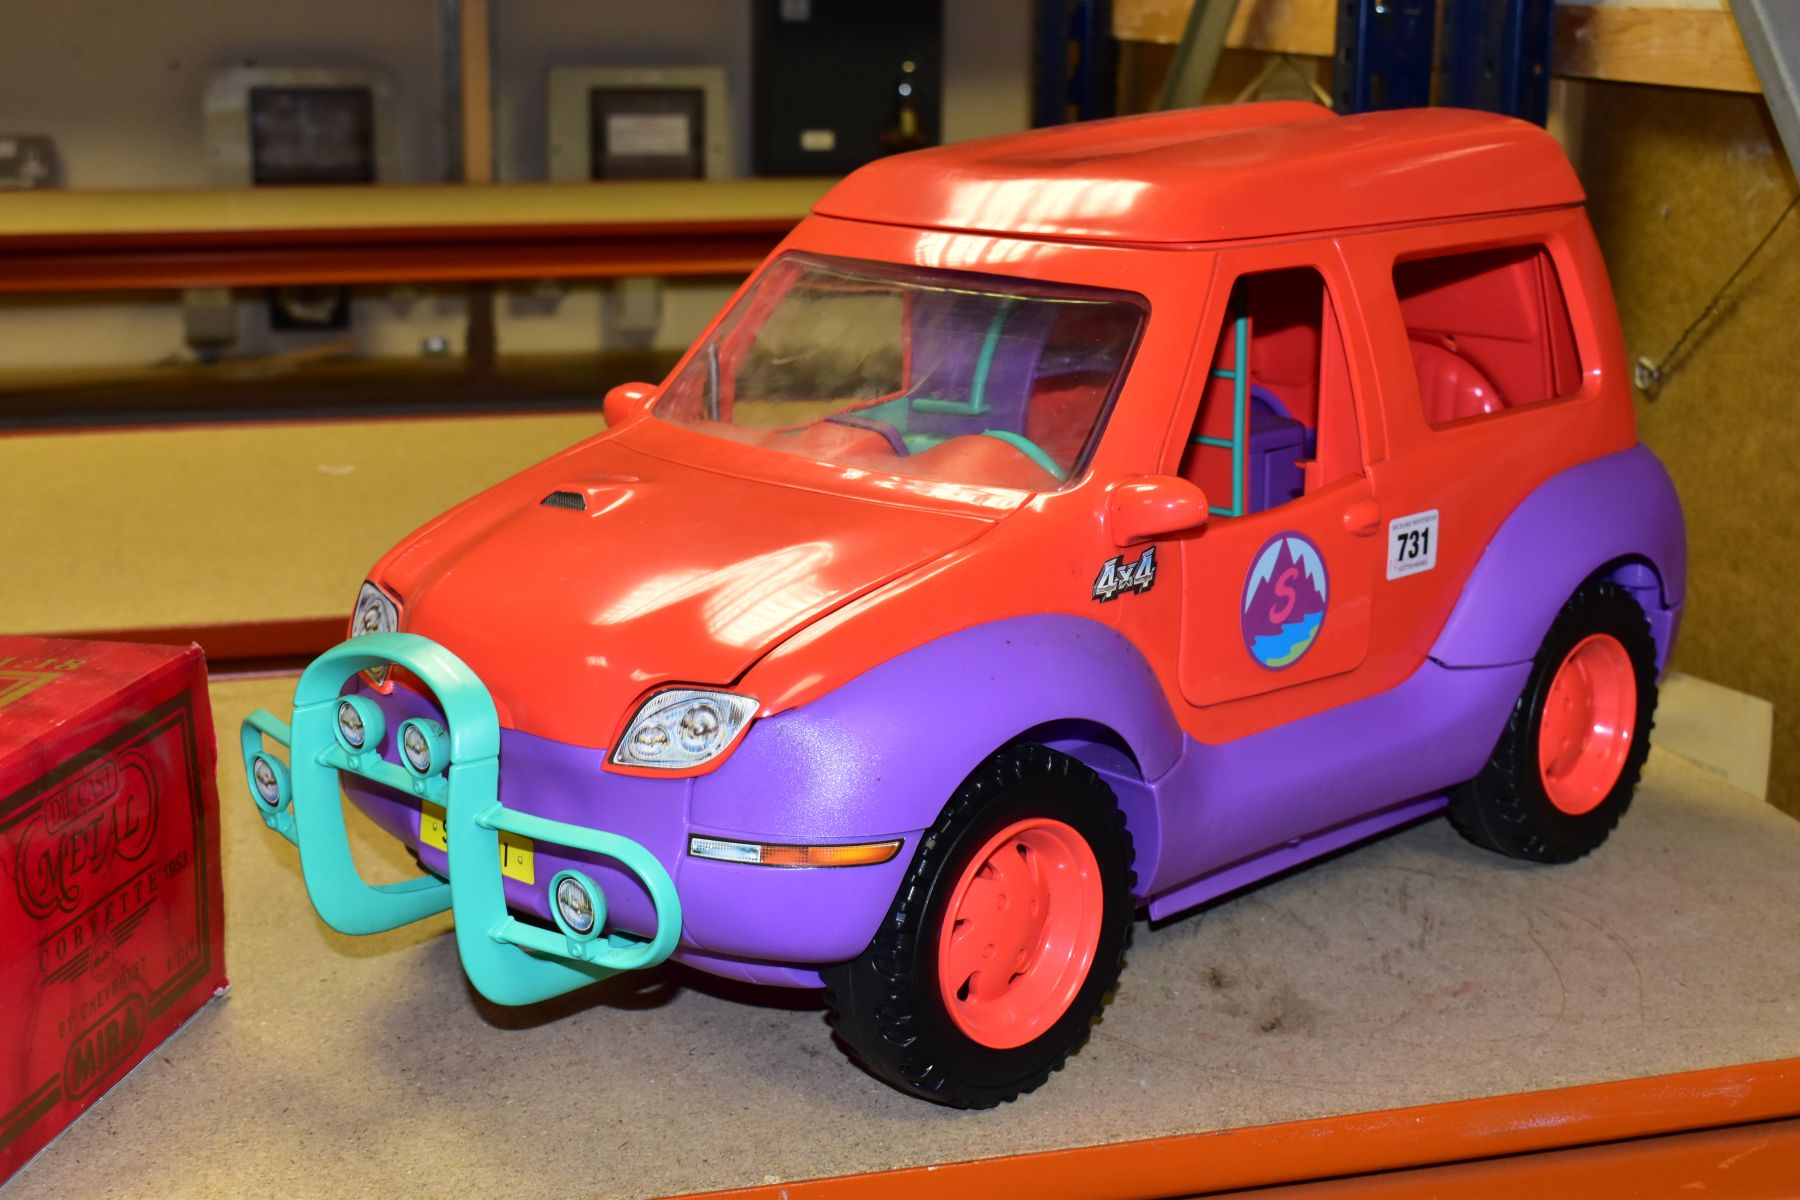 AN UNBOXED SINDY - SPACE 4X4 CAMPER VAN/HOLIDAY HOME, missing some accessories but otherwise appears - Image 3 of 5